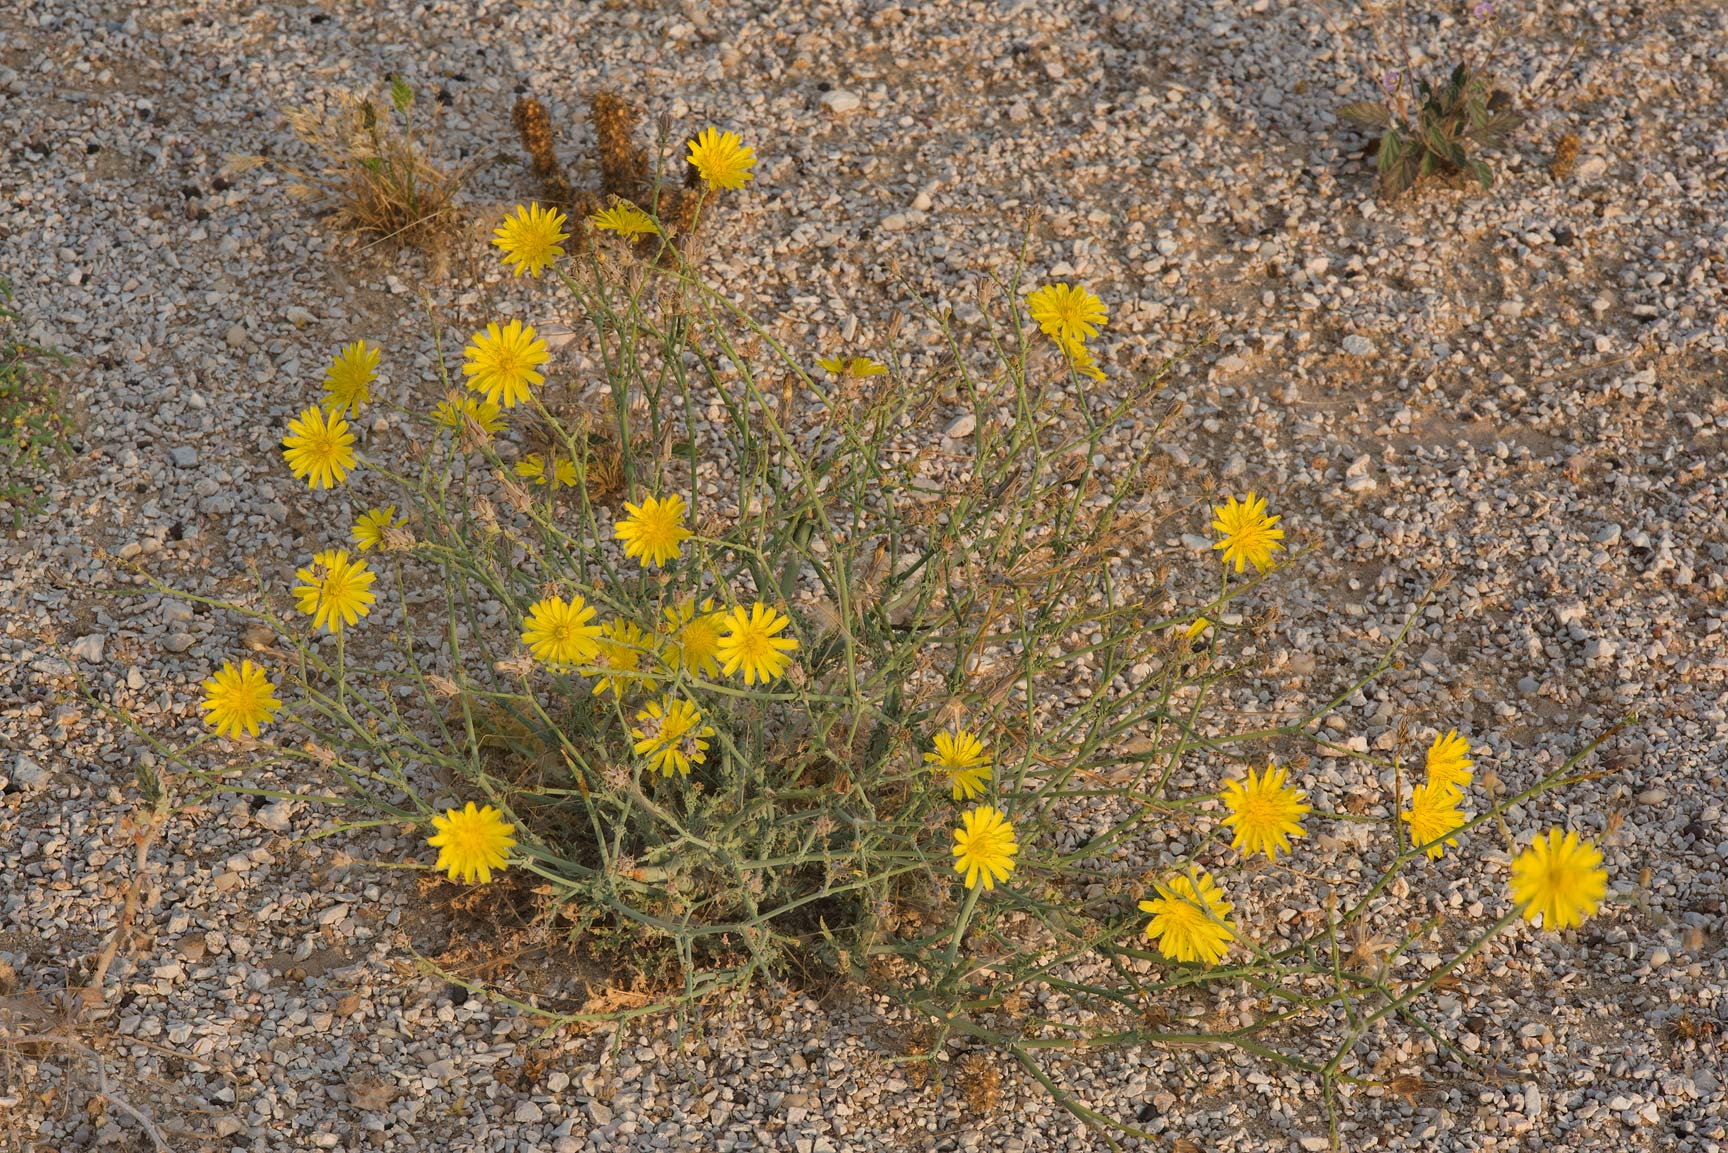 Yellow flowers of Launaea mucronata (local name...Al Kharrarah). Southern Qatar